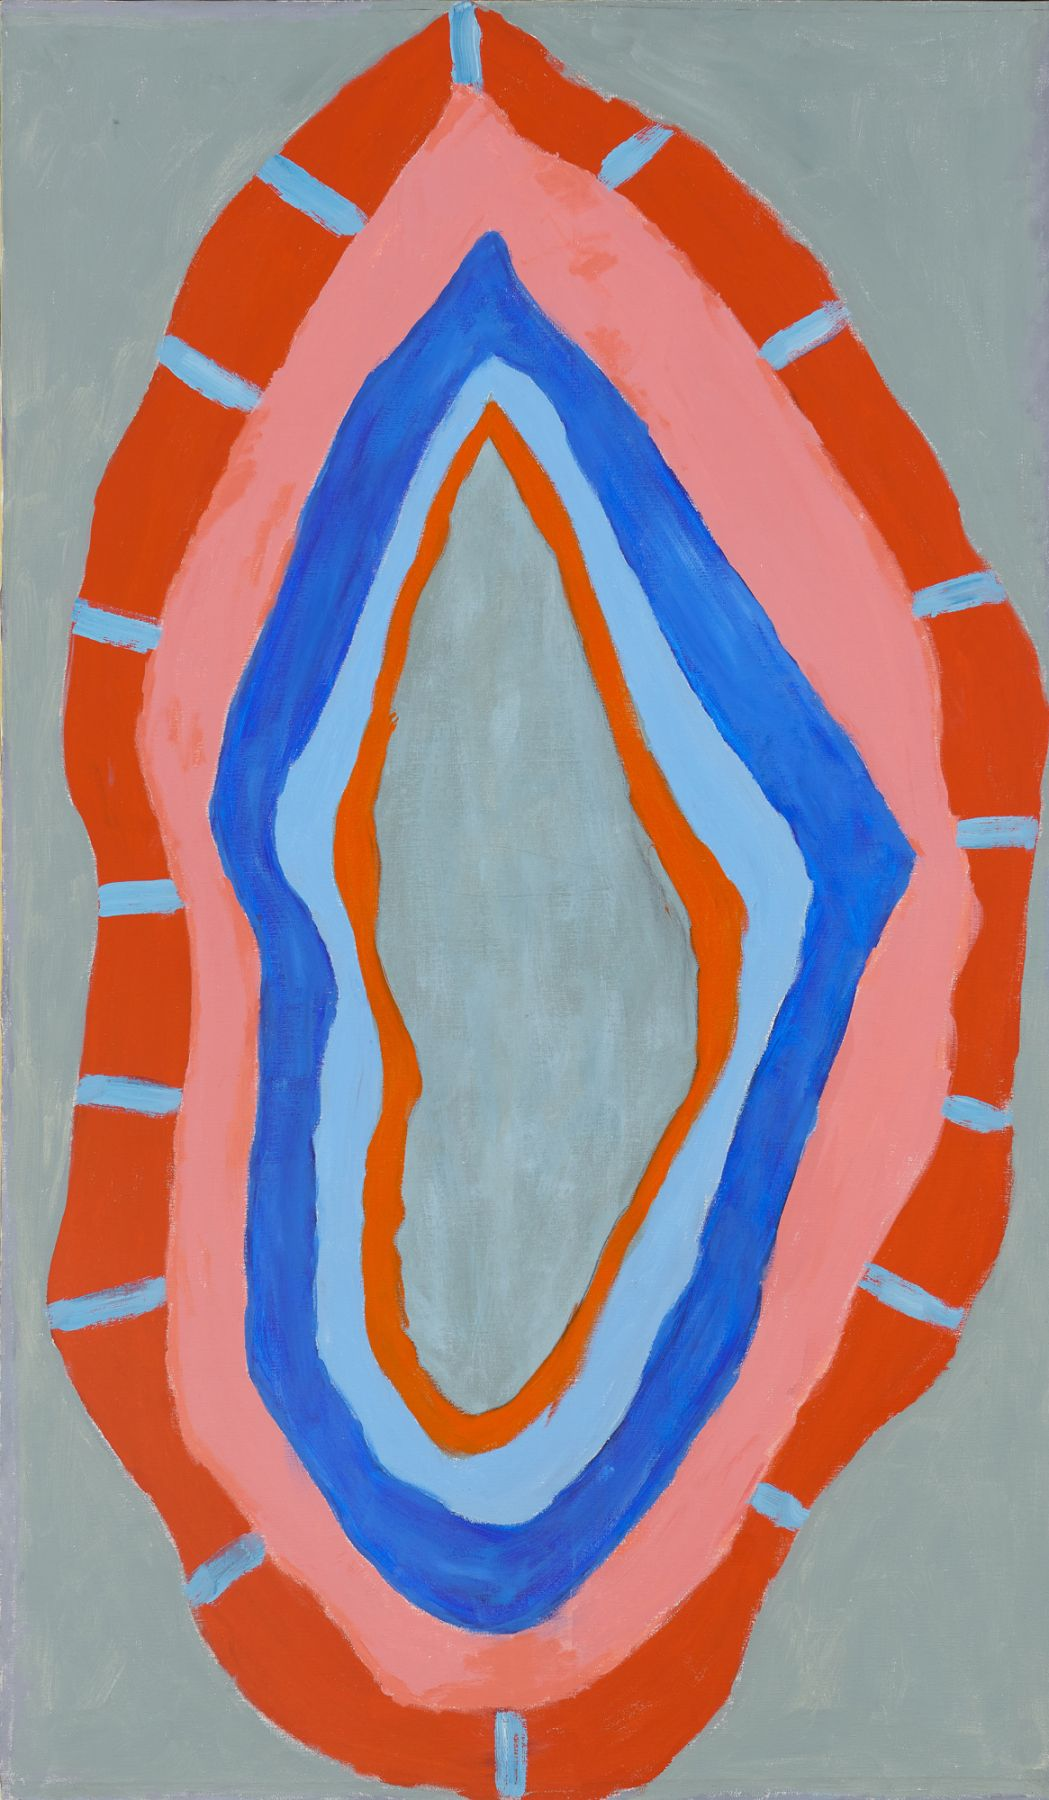 Betty Parsons, Flame, 1967